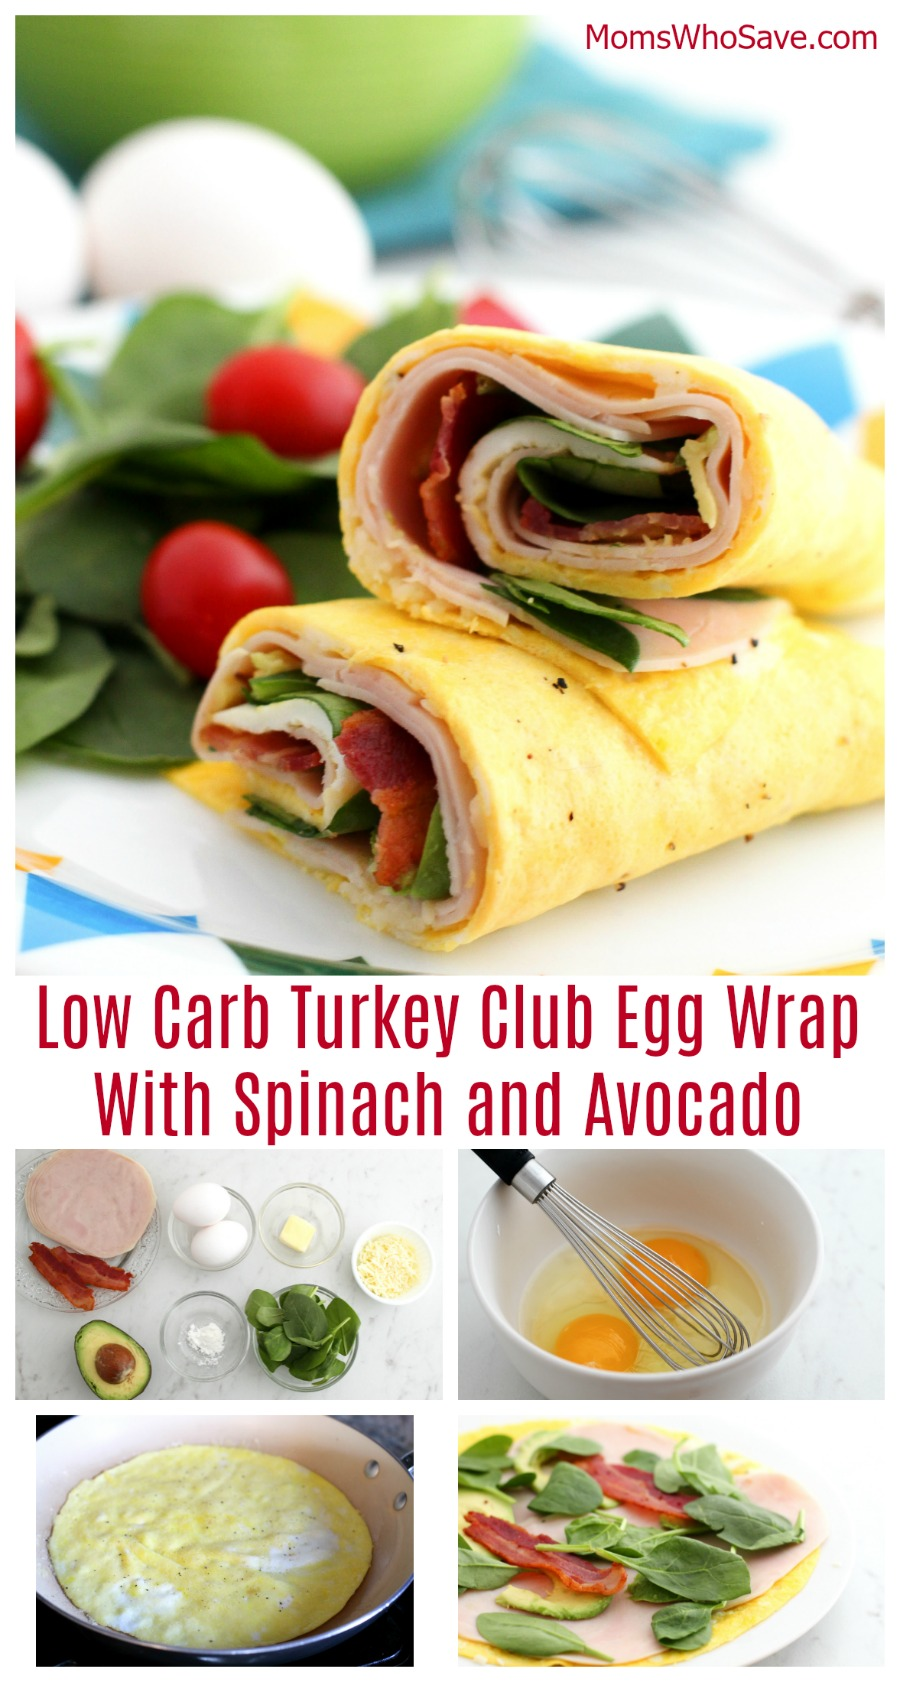 low carb egg wrap recipe